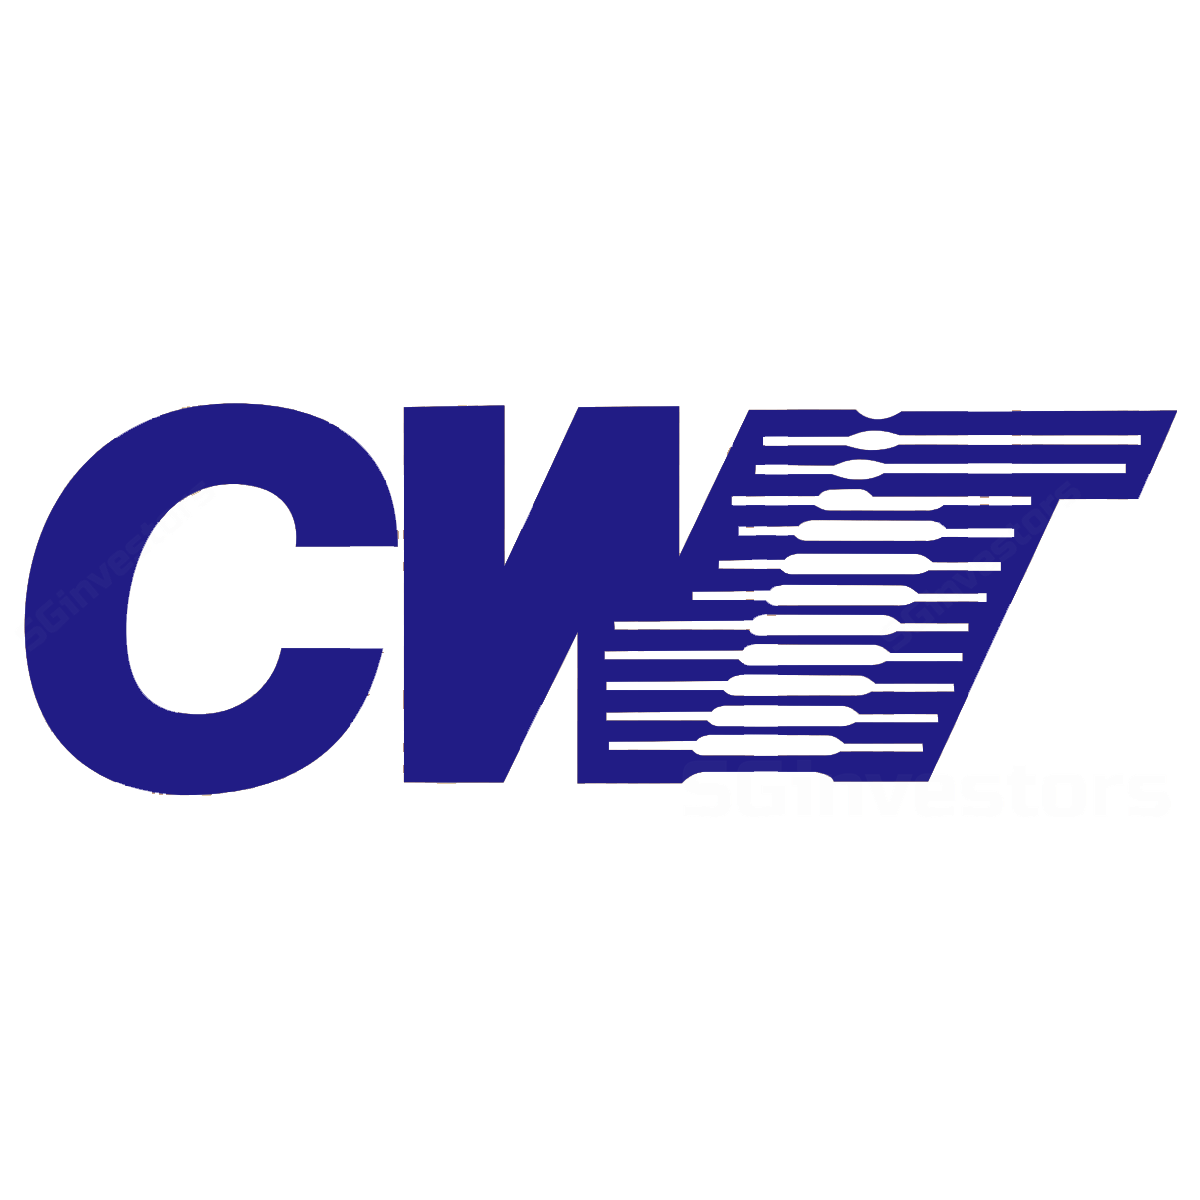 CWT Limited - OCBC Investment 2017-07-11: One Step Closer To VGO But Stay Cautious